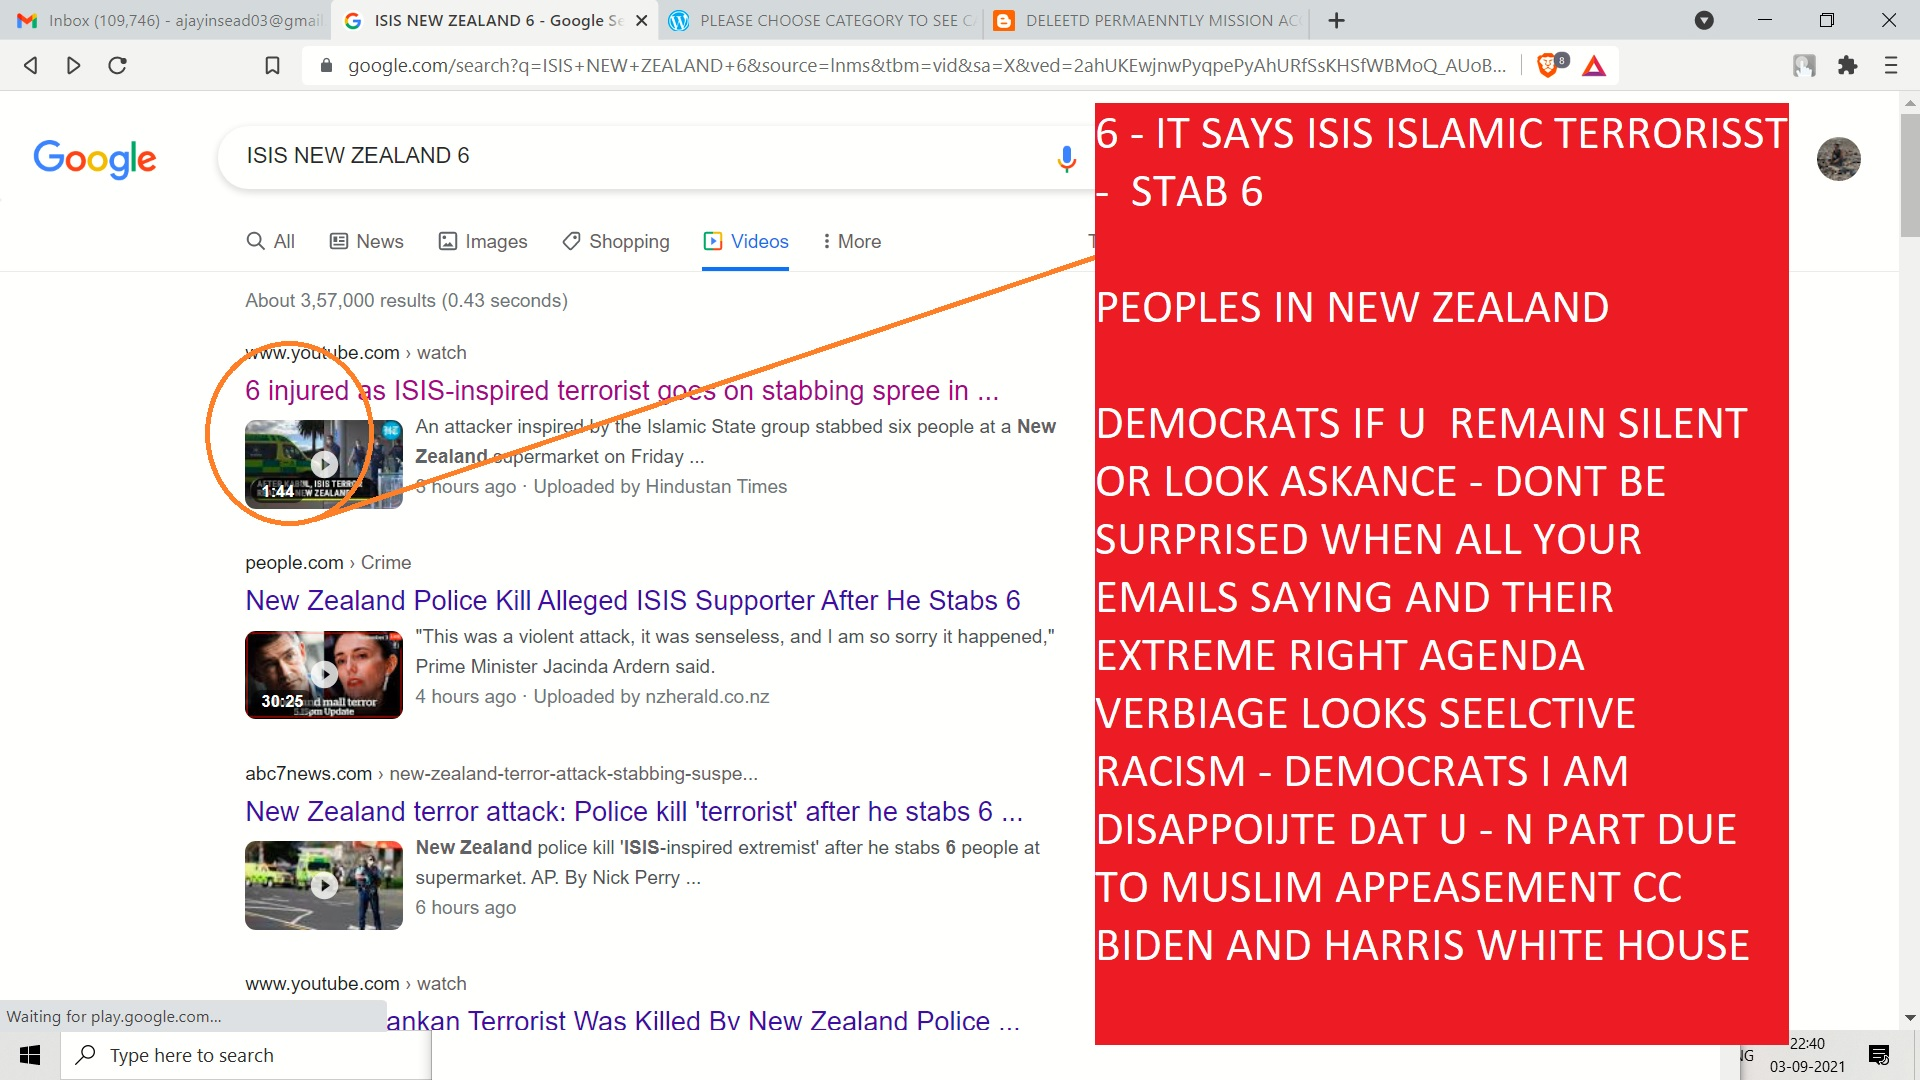 6 - IT SAYS ISIS ISLAMIC TERRORISST - STAB 6 IN AUCKLAND NEW ZEALAND